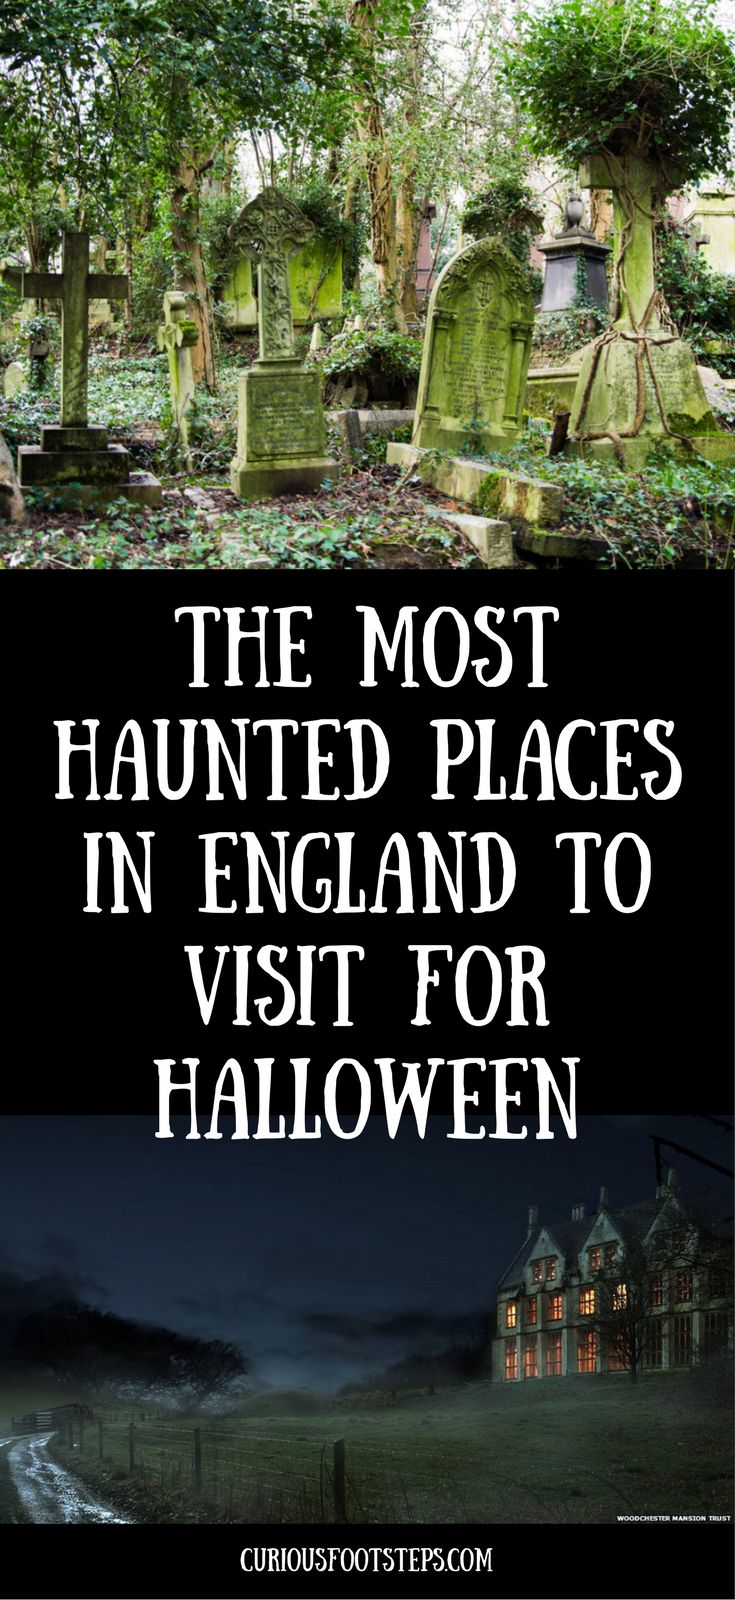 The most haunted places in england to visit for halloween.....from a floating head in the bathroom of an unfinished mansion to the sound of phantom horses hooves on the cobbles at an old smugglers haunt, there are plenty of ghostly tales and mysterious sights throughout the country!